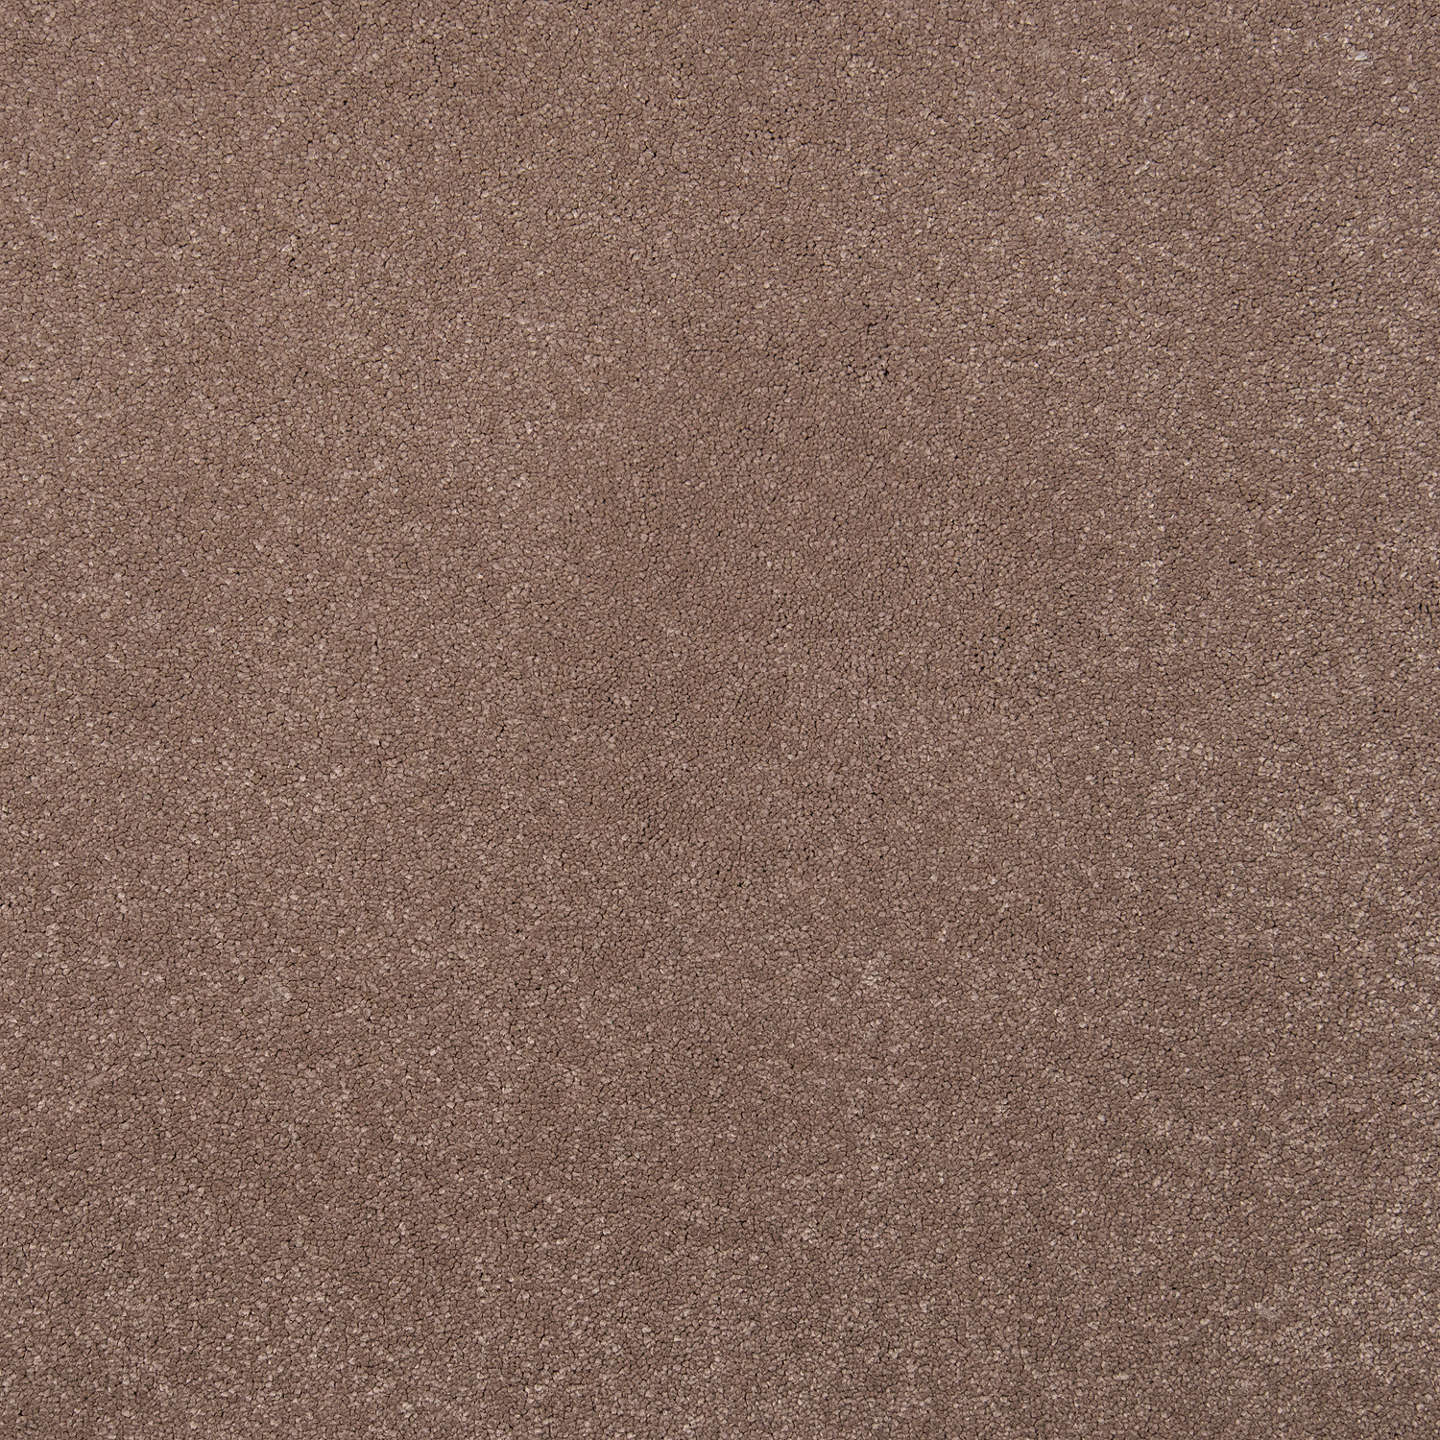 BuyJohn Lewis Easy Clean Soft Twist 42oz Carpet, Light Cocoa Online at johnlewis.com